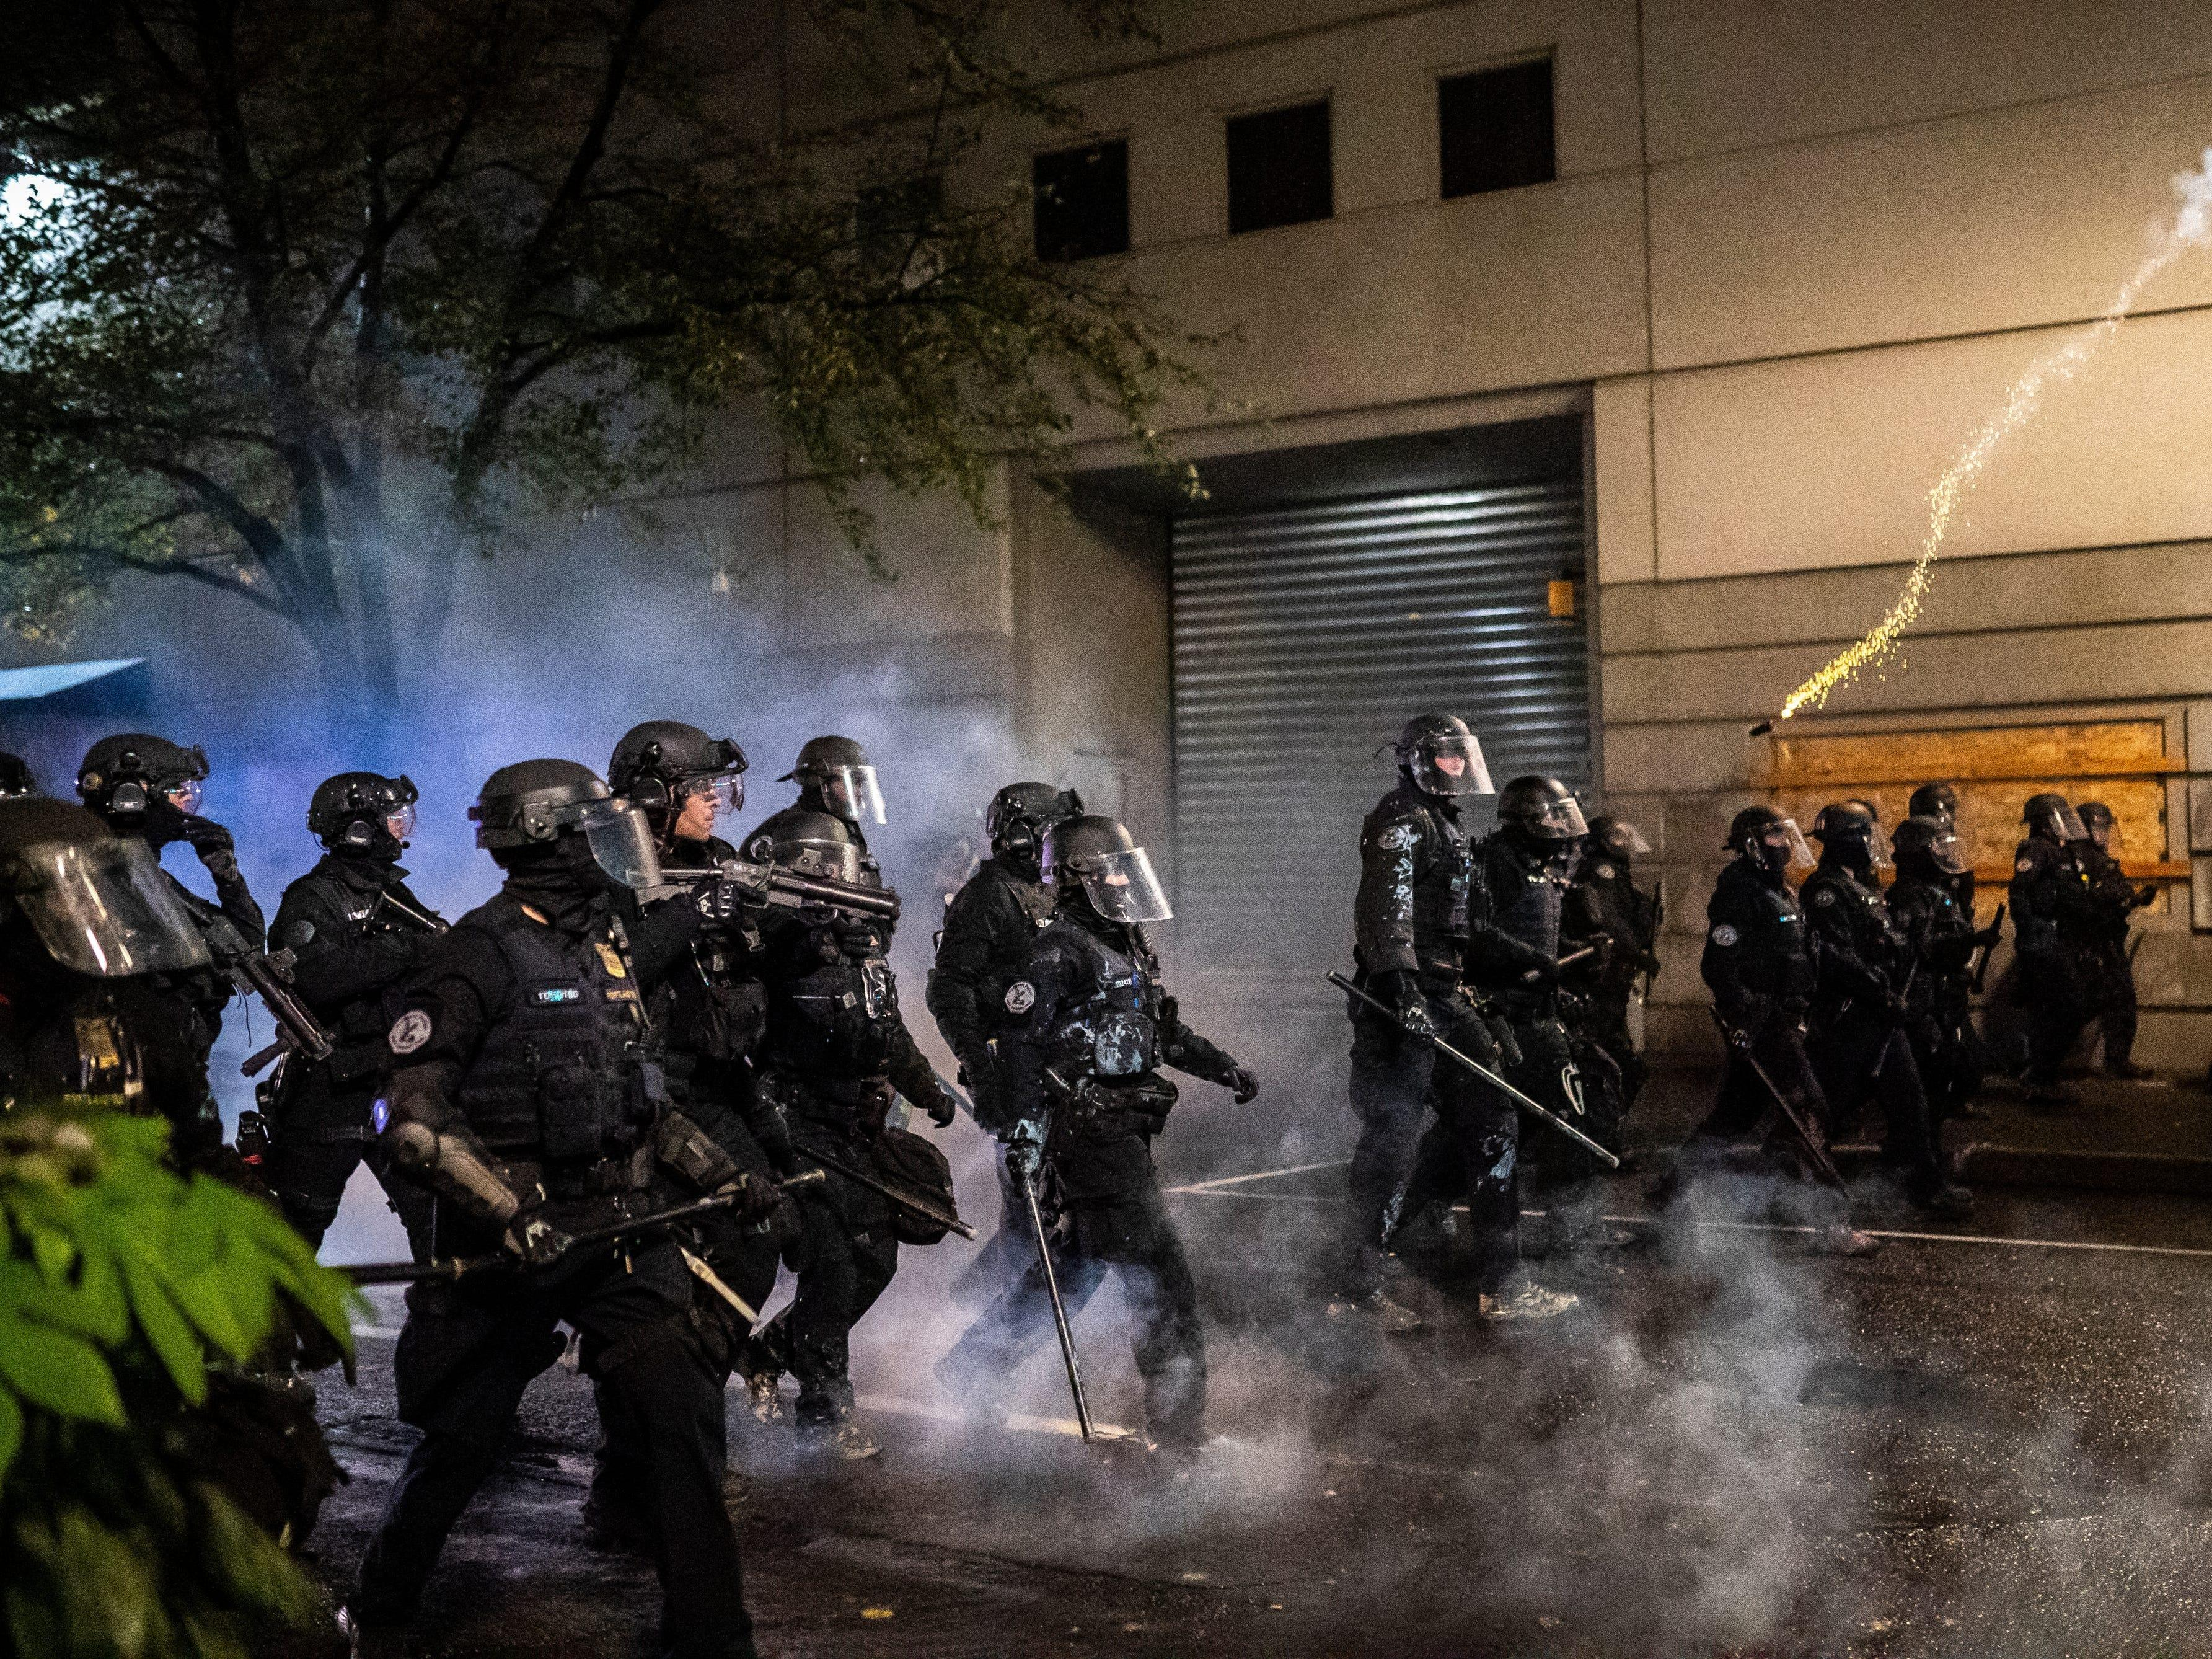 Portland police officers have quit the force's crowd-control team after one of the cops was charged with assaulting a protester